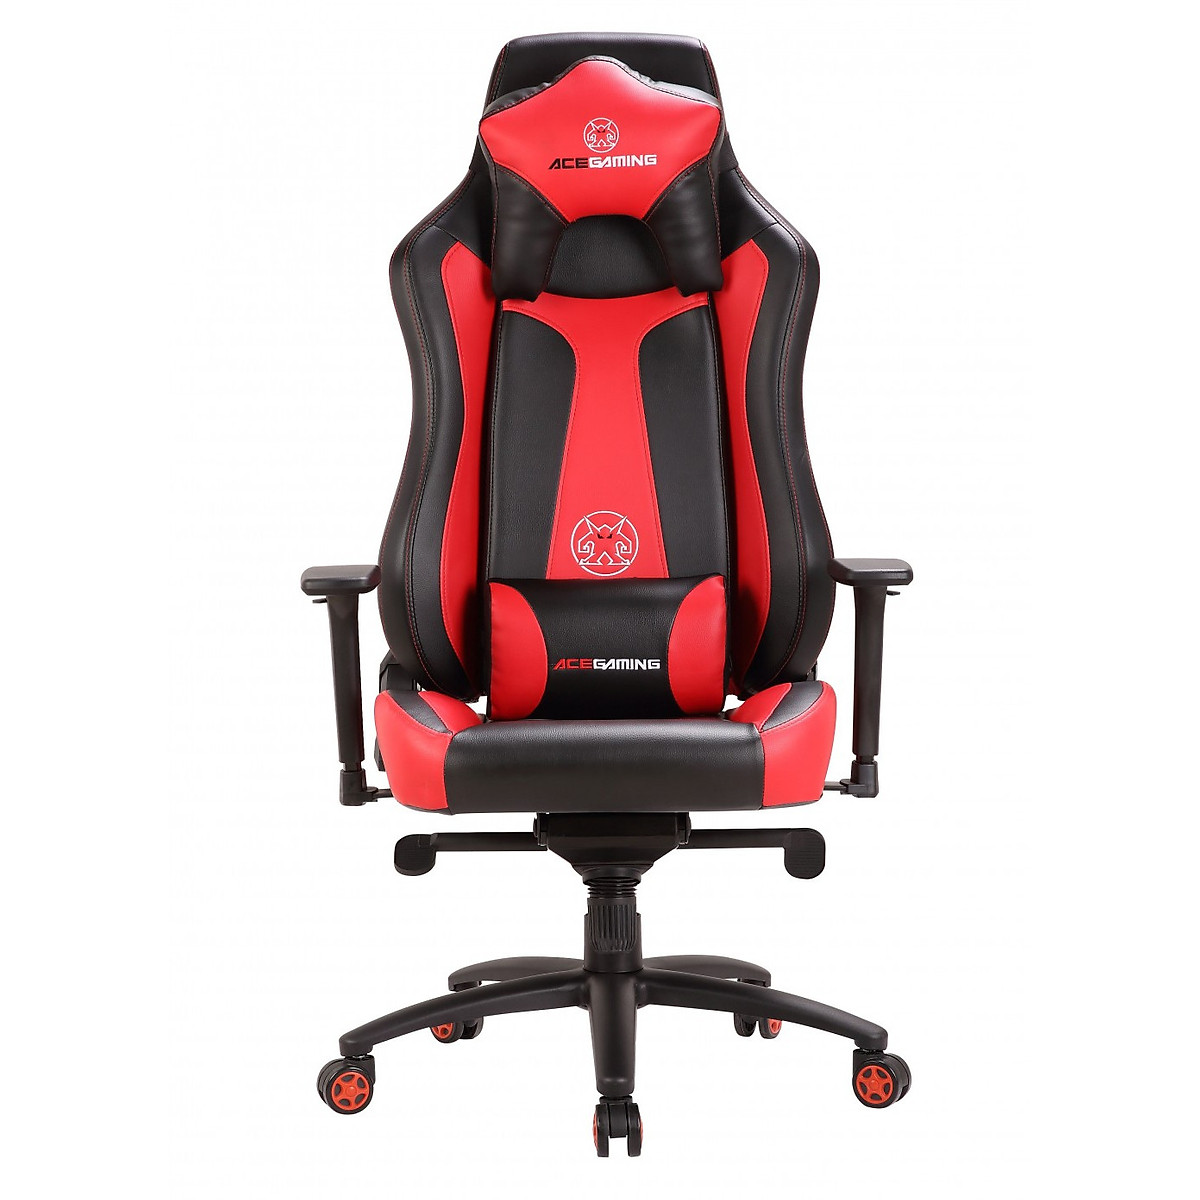 Ghế Ace Gaming Chair – Marshal Series – Model: KW-G100 – Color: Black/Red – Hàng chính hãng